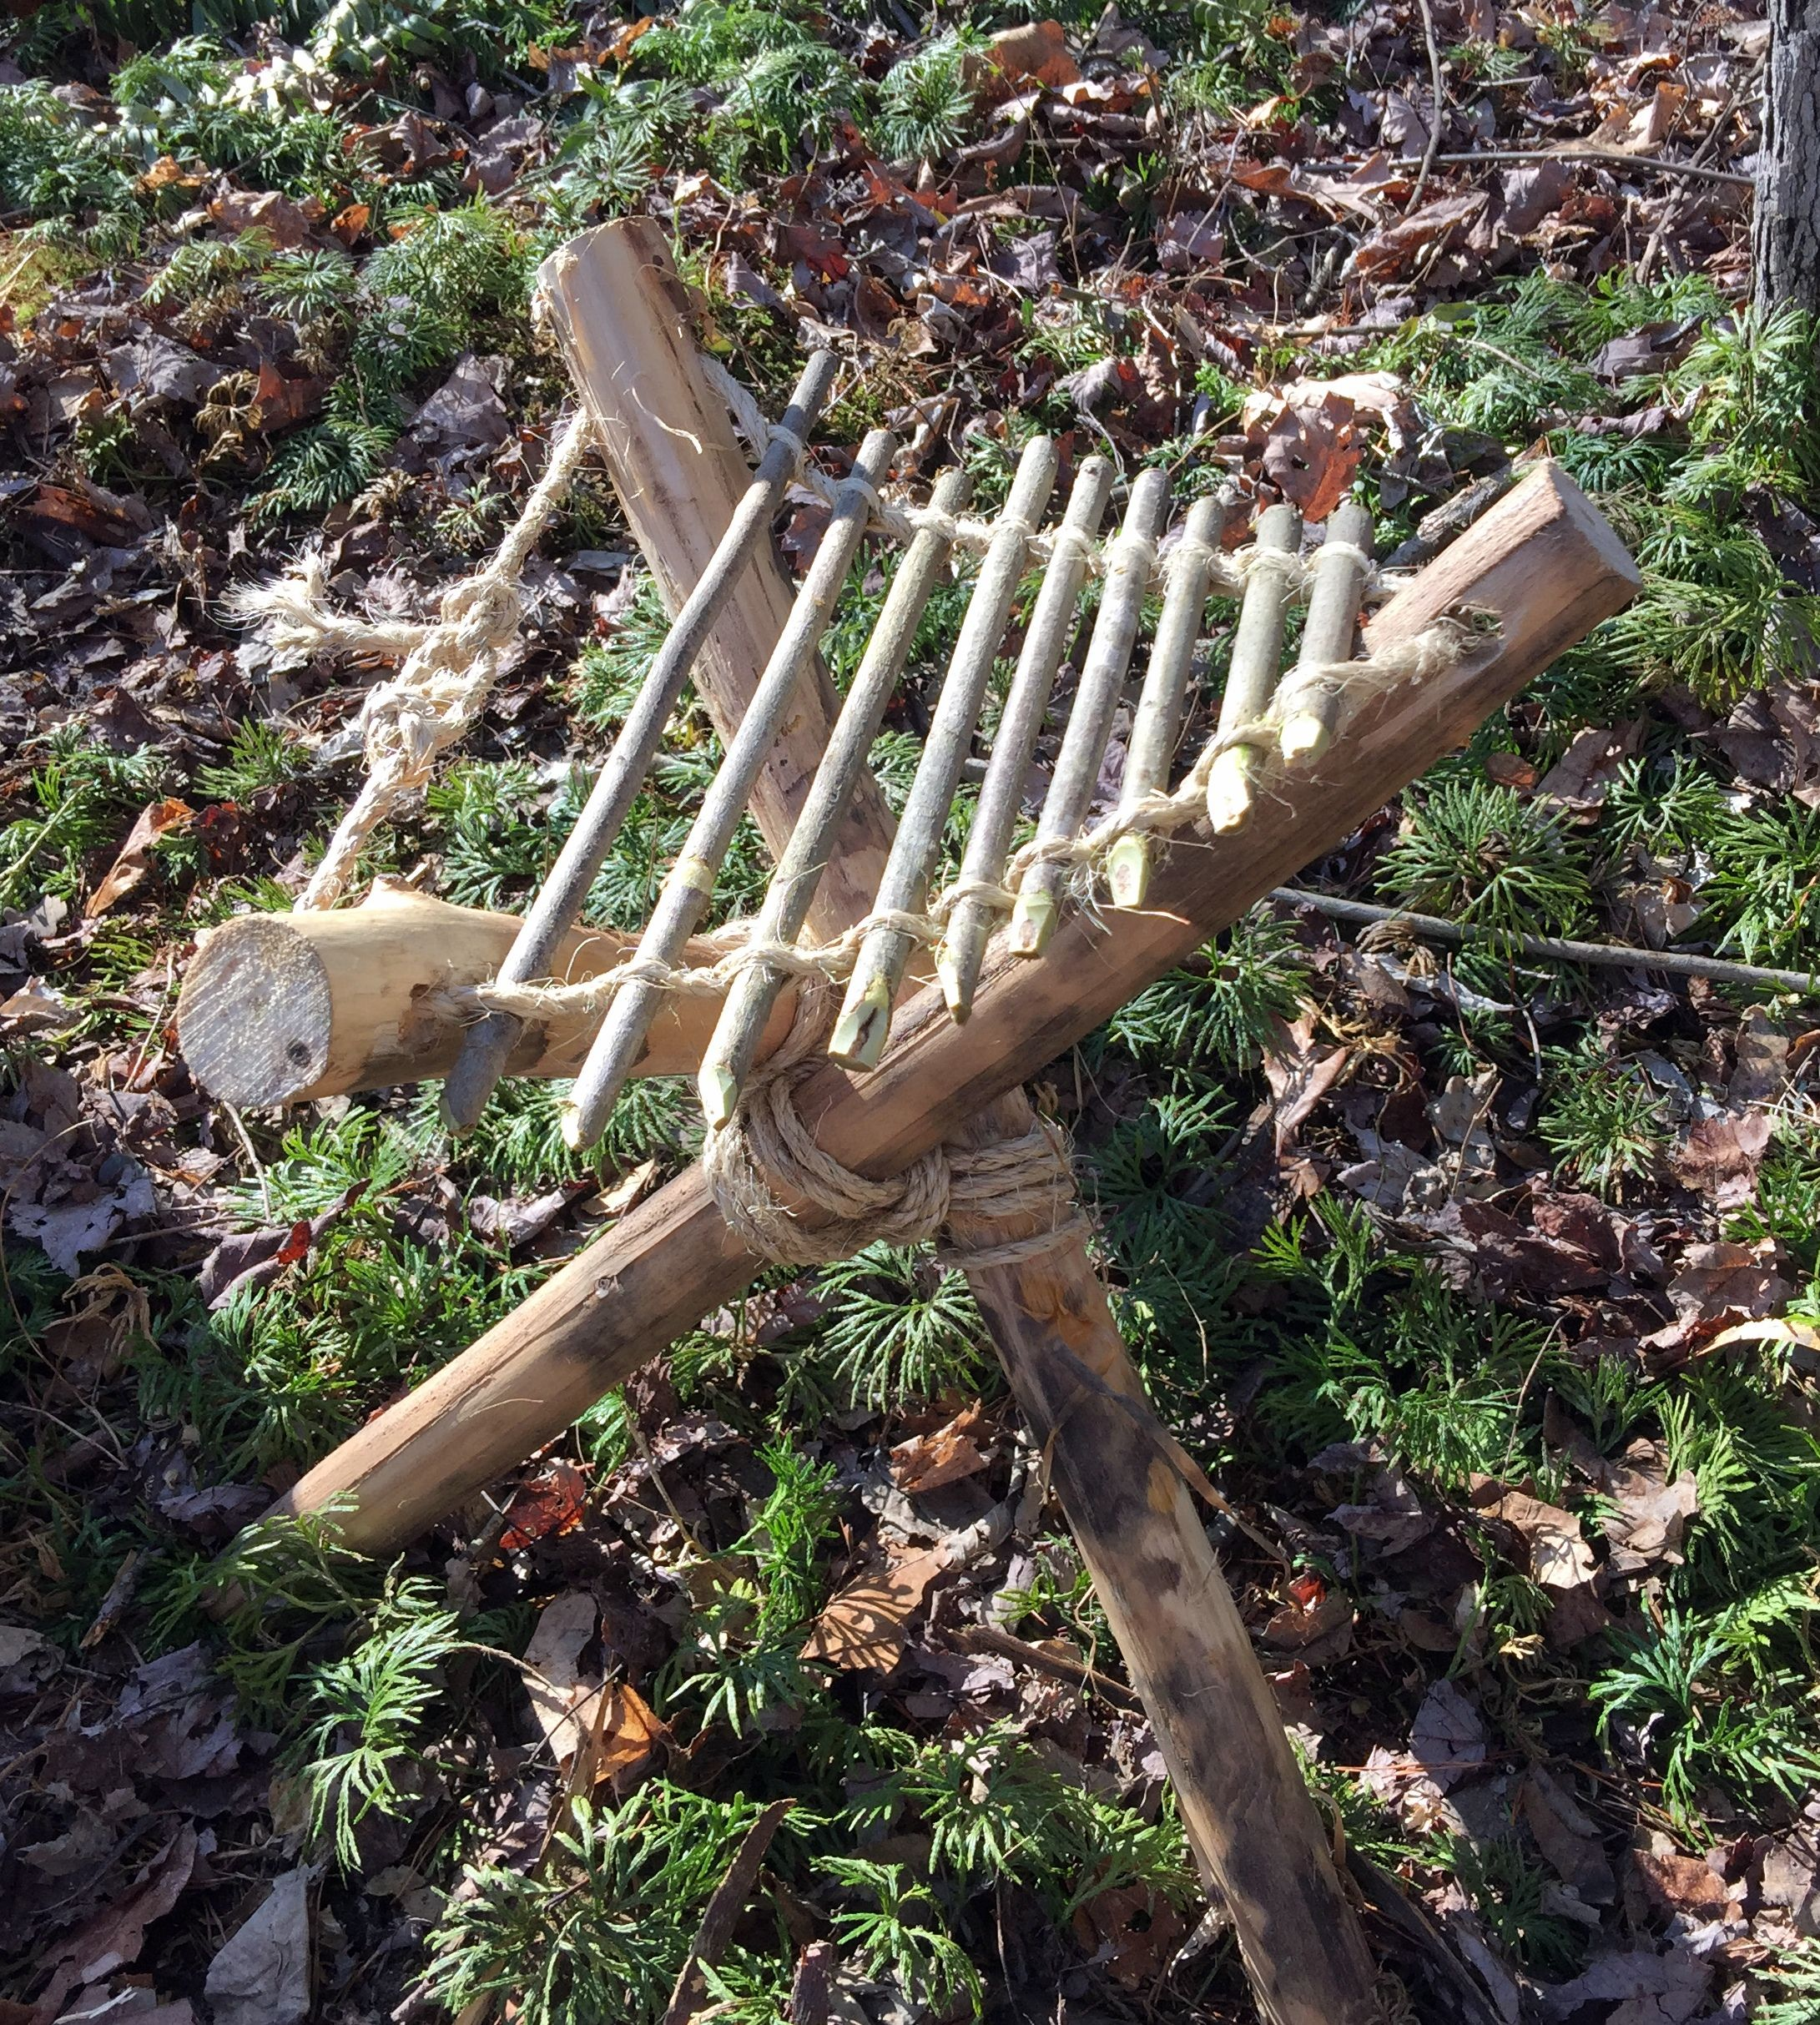 Tripod with stick seat Bushcraft camping, Survival